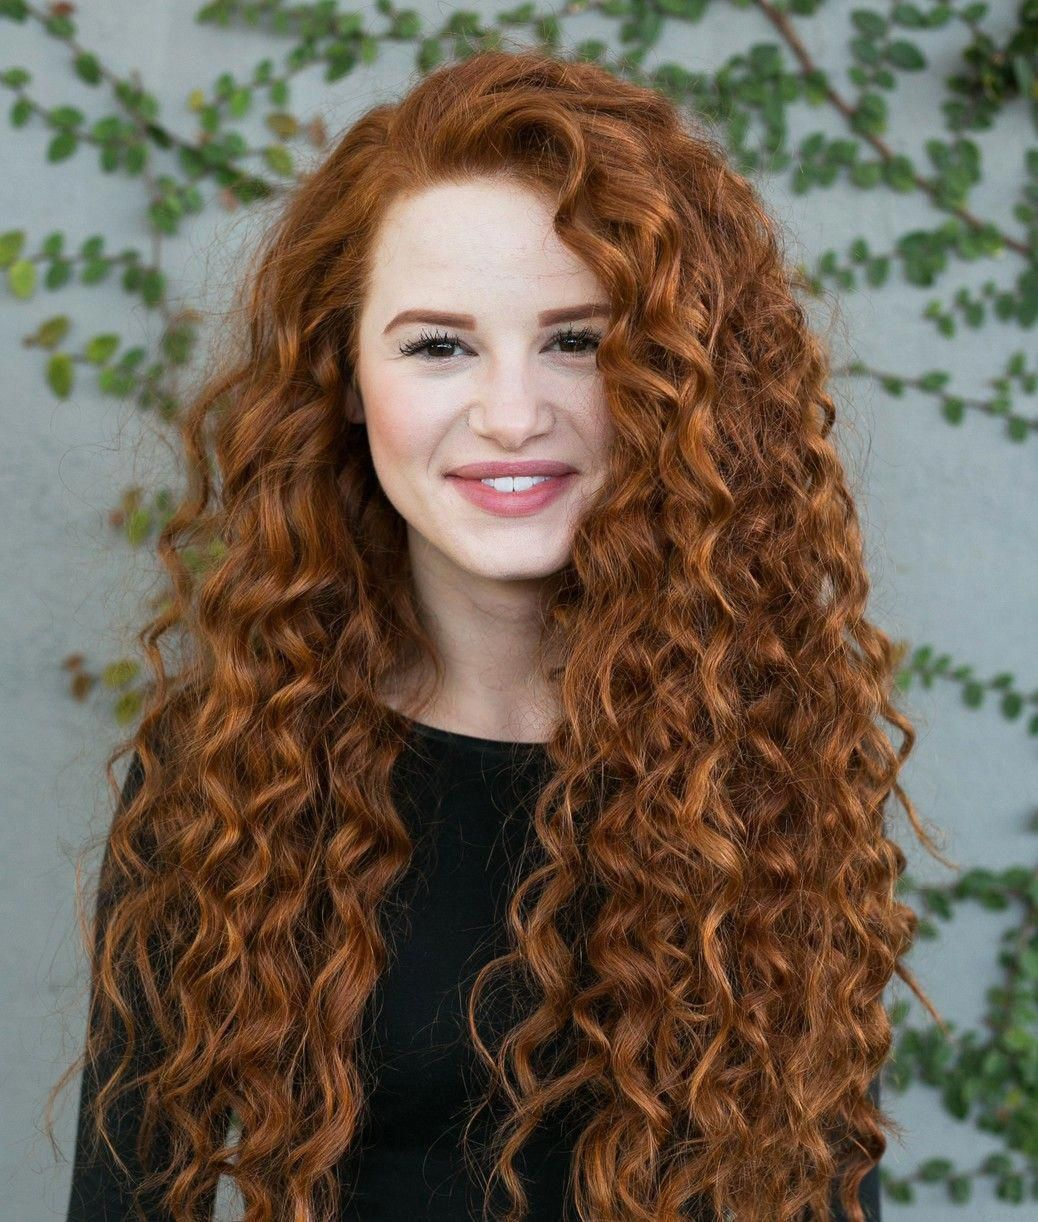 Short Haircuts For Women With Curly Hair Curly Hair Girl How To Make Your Curly Hair More Curly 20181118 Hair Styles Red Curly Hair Long Hair Styles